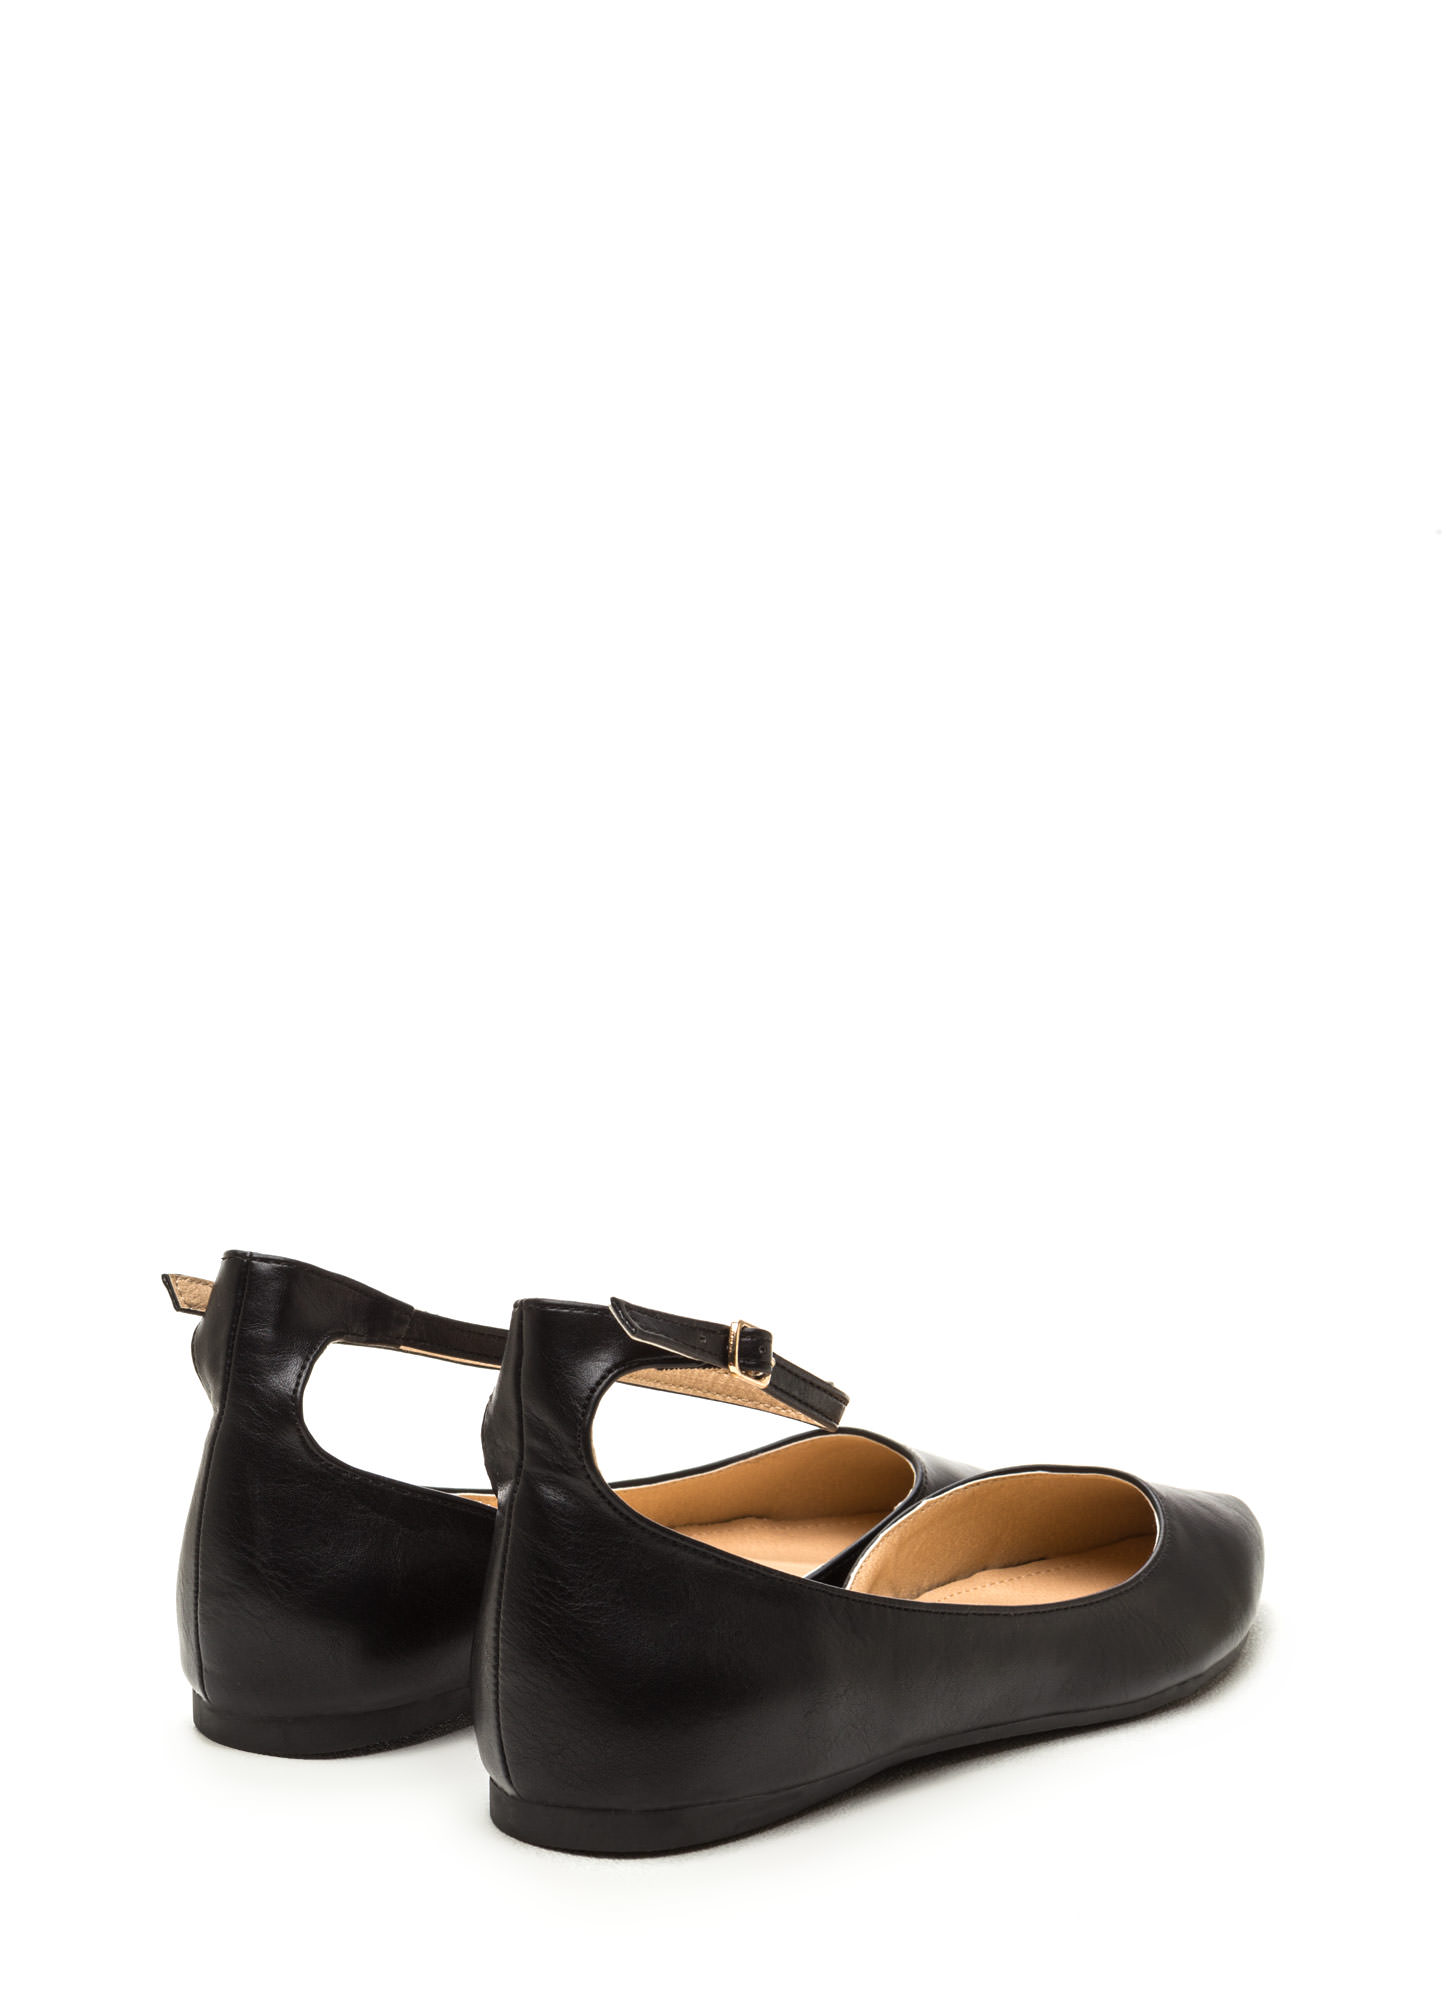 Make It A Point Faux Leather Flats BLACK